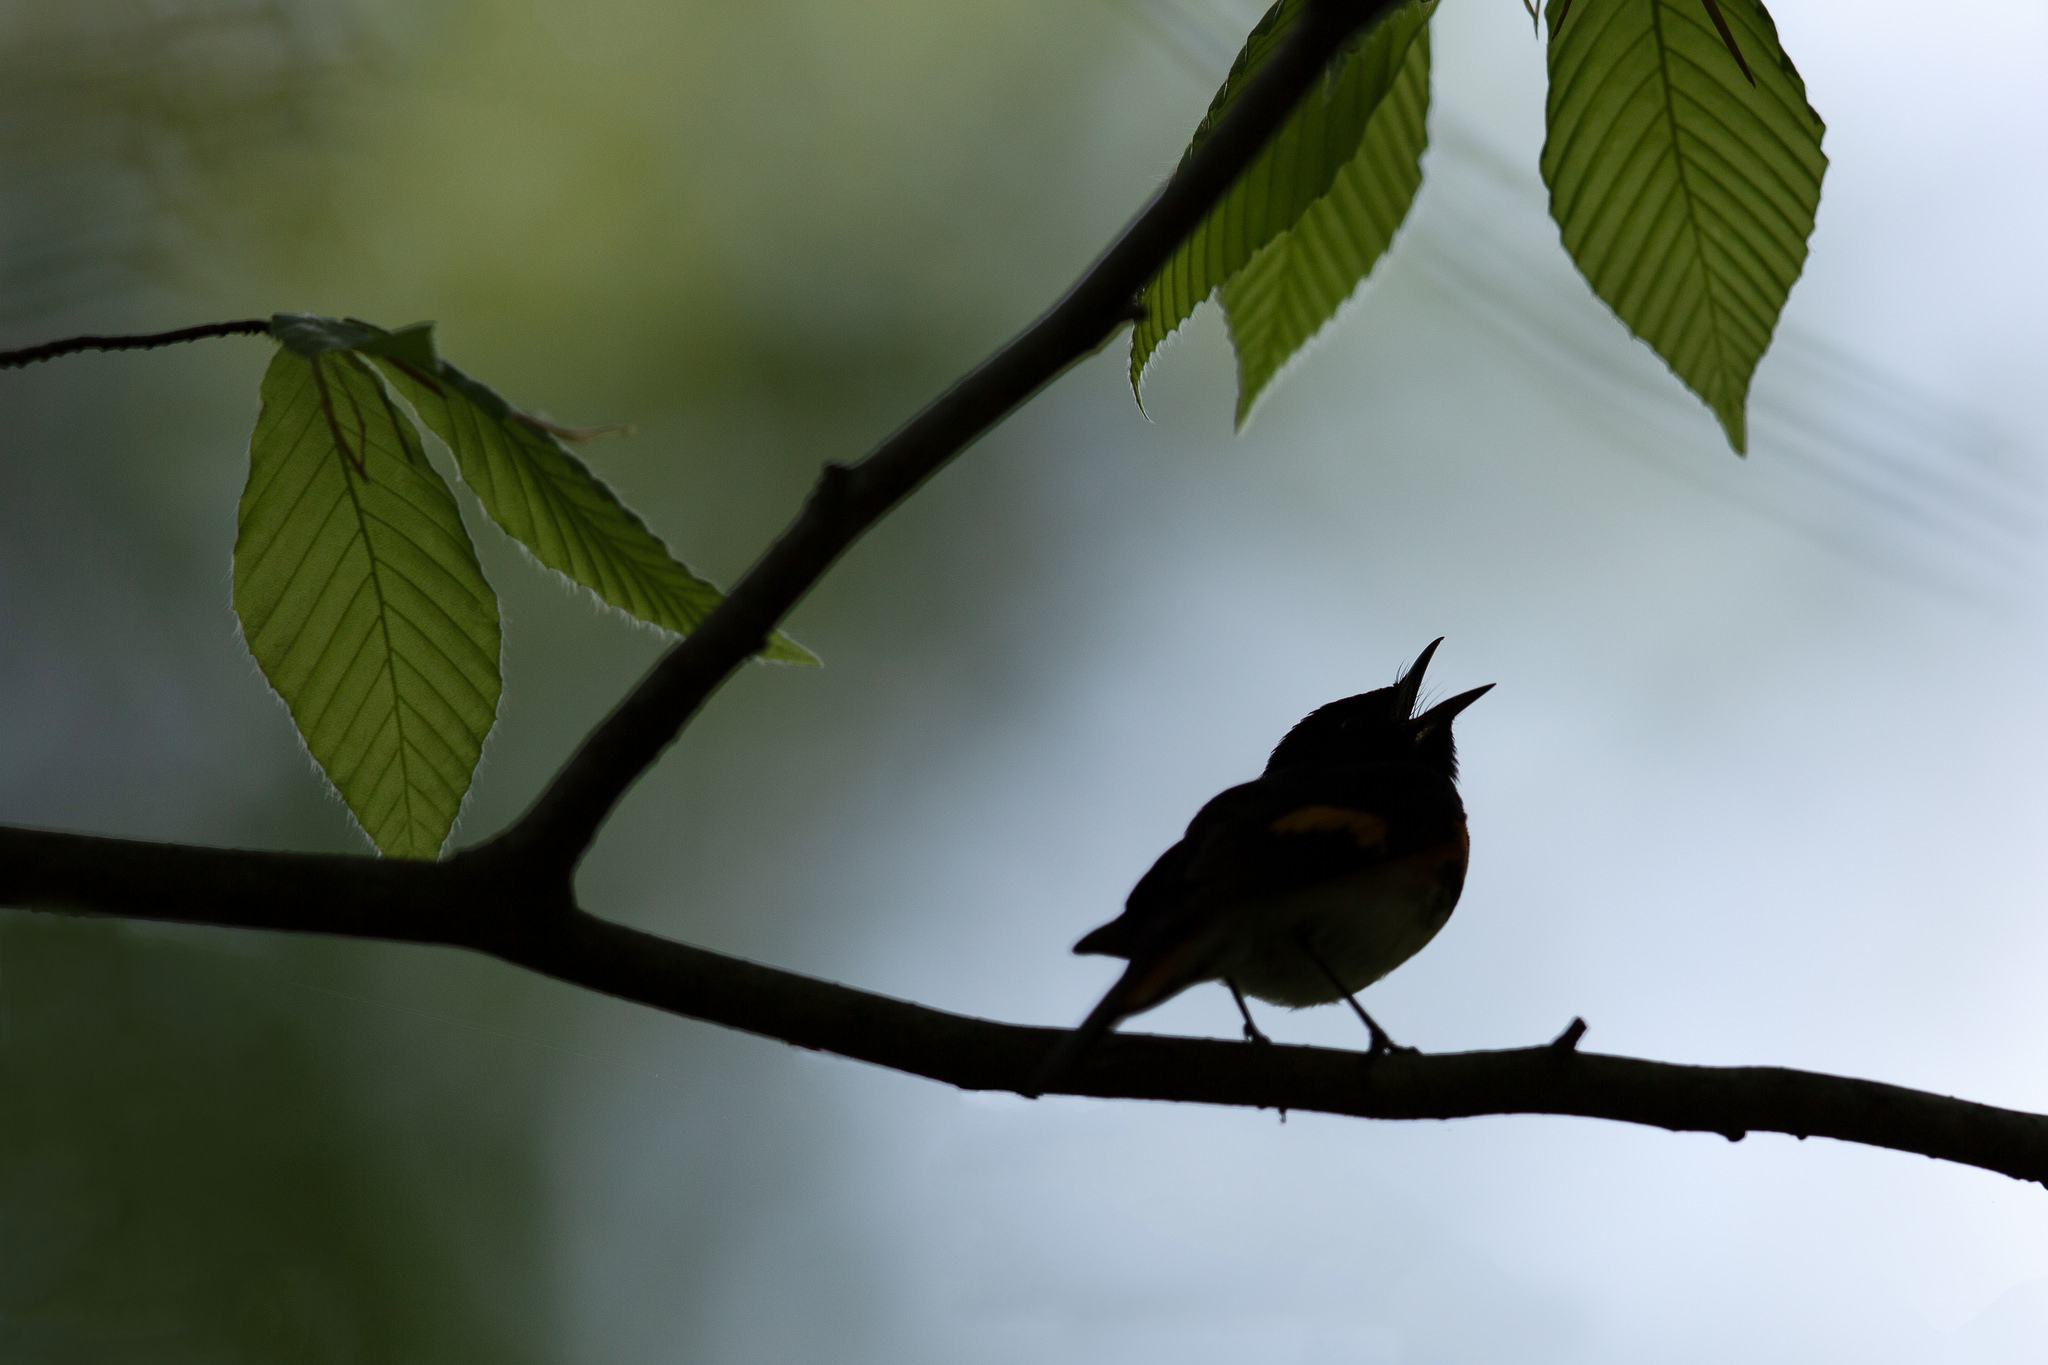 American Redstart silhouette singing in the morning, Patuxent Research Refuge North Tract, Laurel Maryland